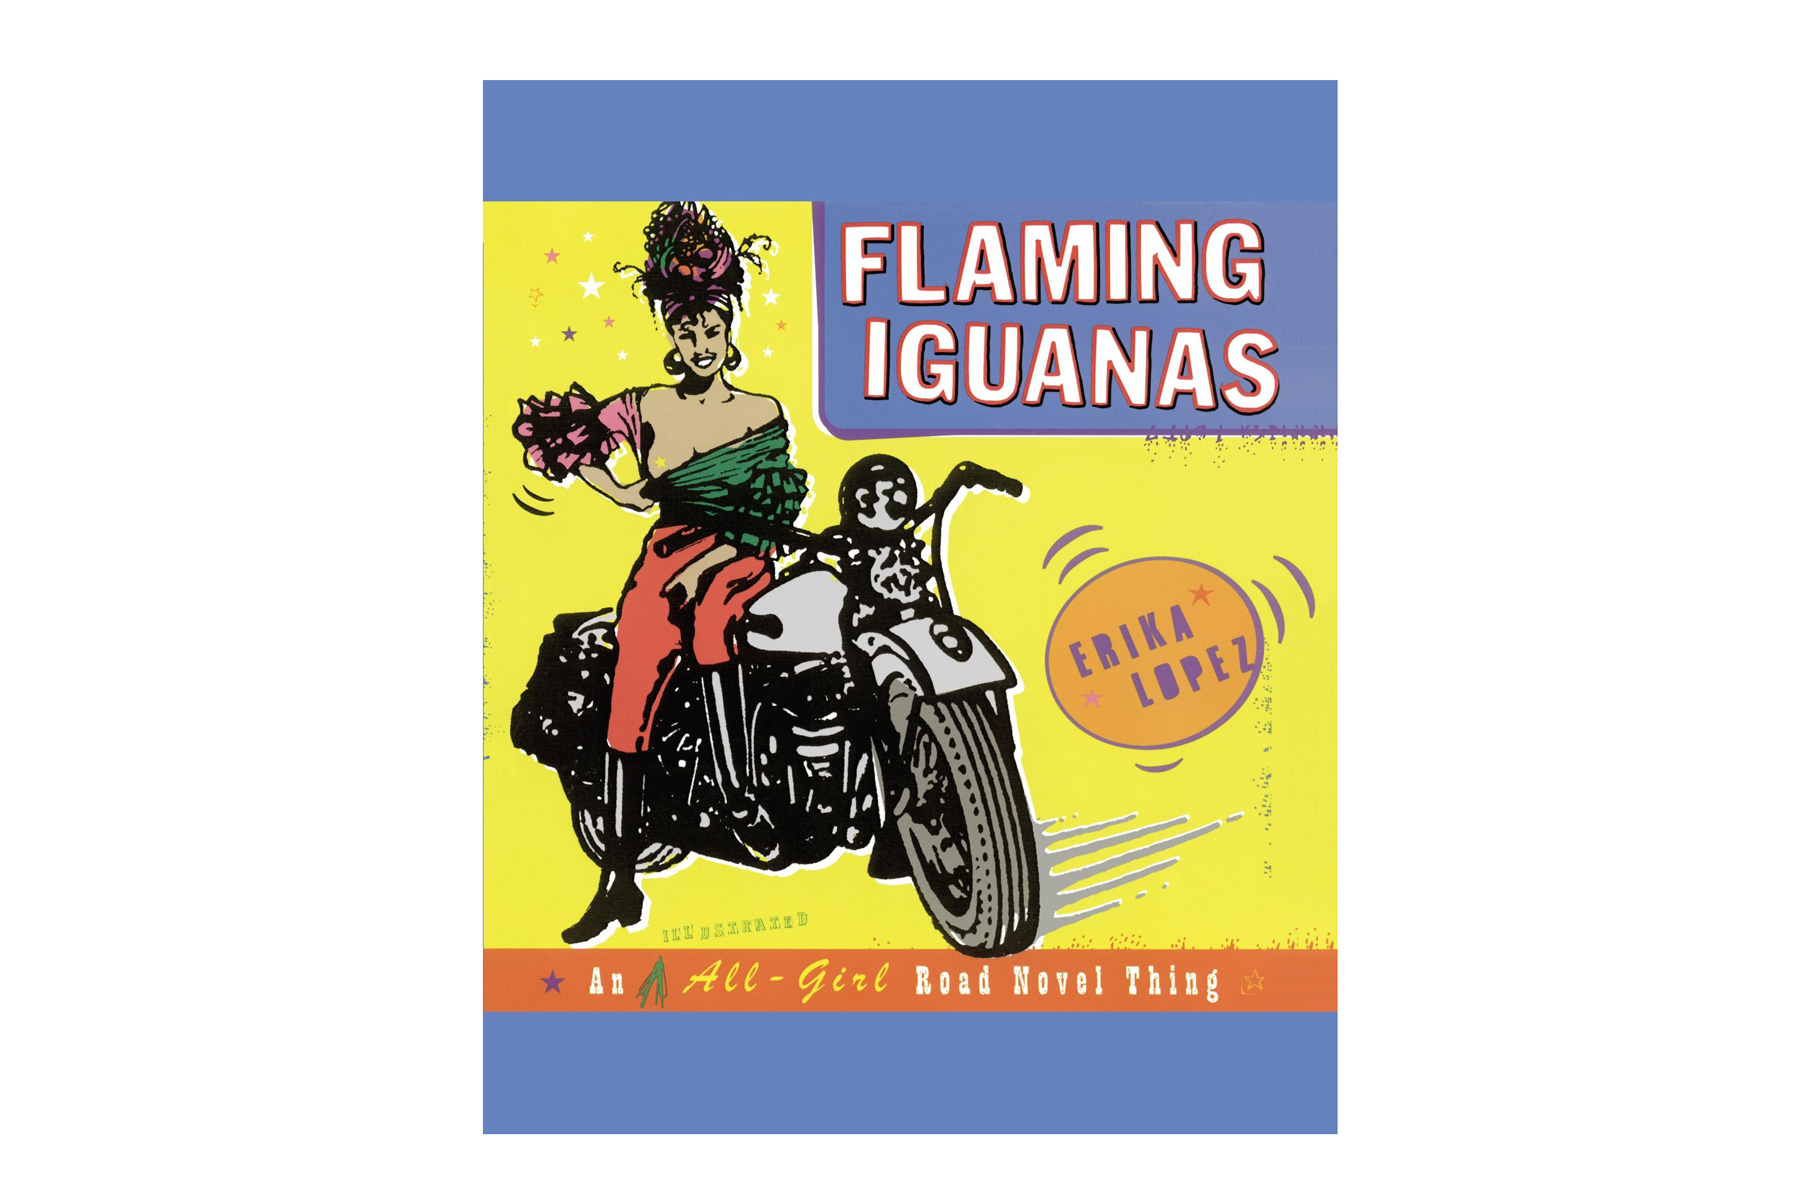 Flaming Iguanas: An Illustrated All-Girl Road Novel Thing, by Erika Lopez (BREAKUP BOOKS)